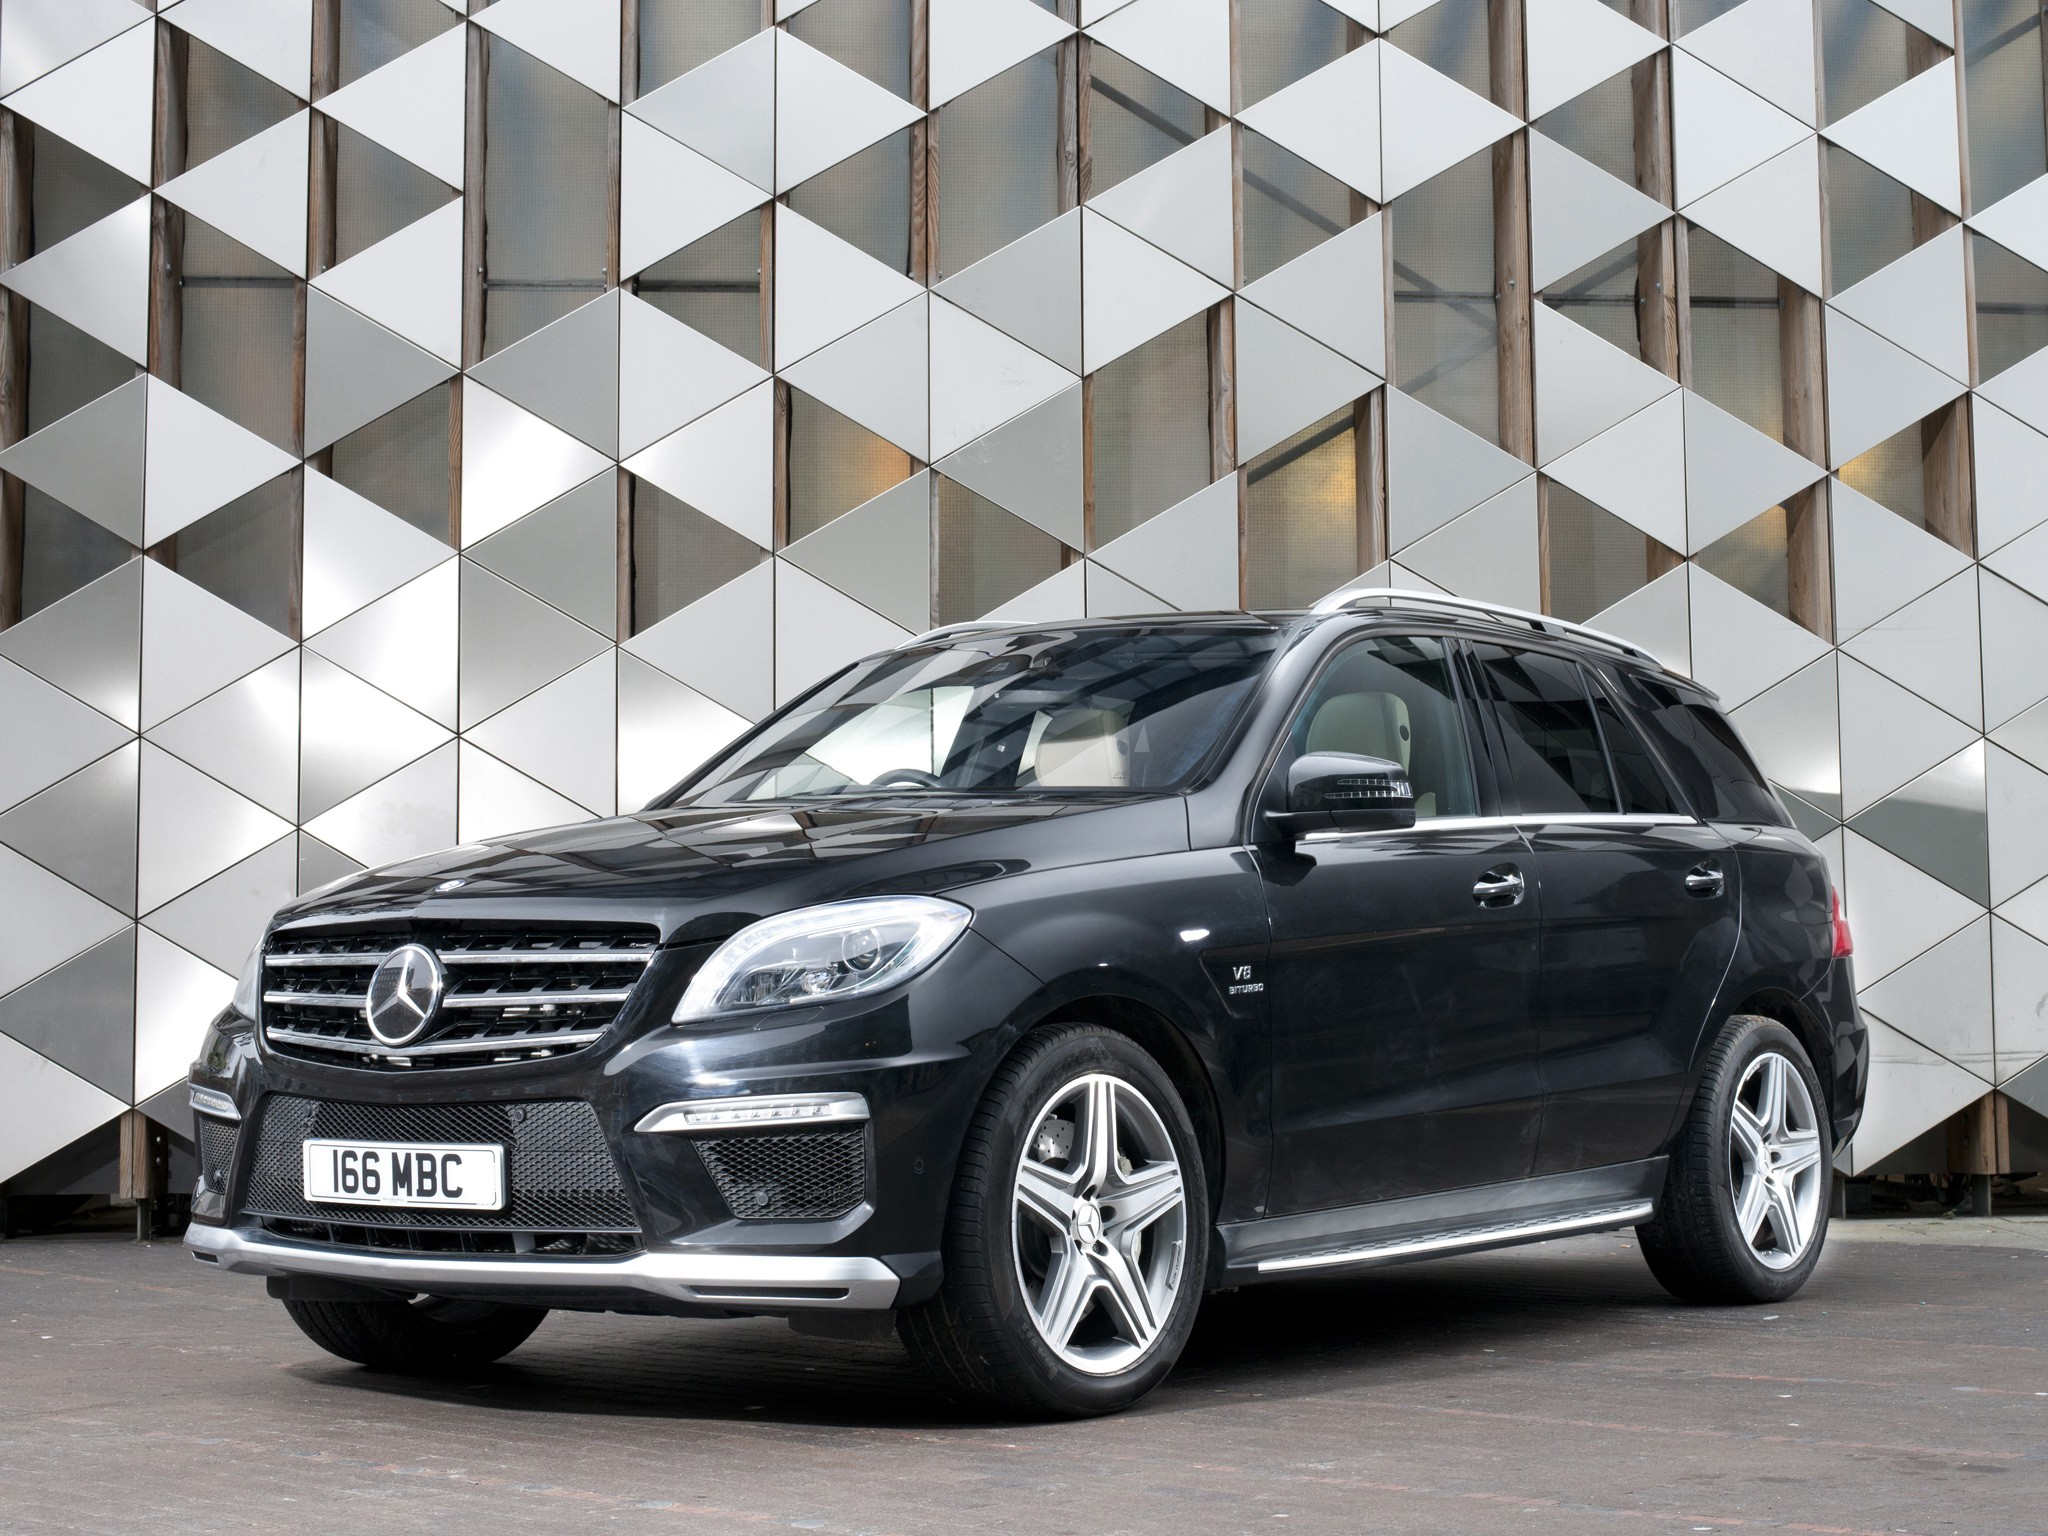 Mercedes benz ml 63 amg w166 specs 2011 2012 2013 for Mercedes benz ml 63 amg